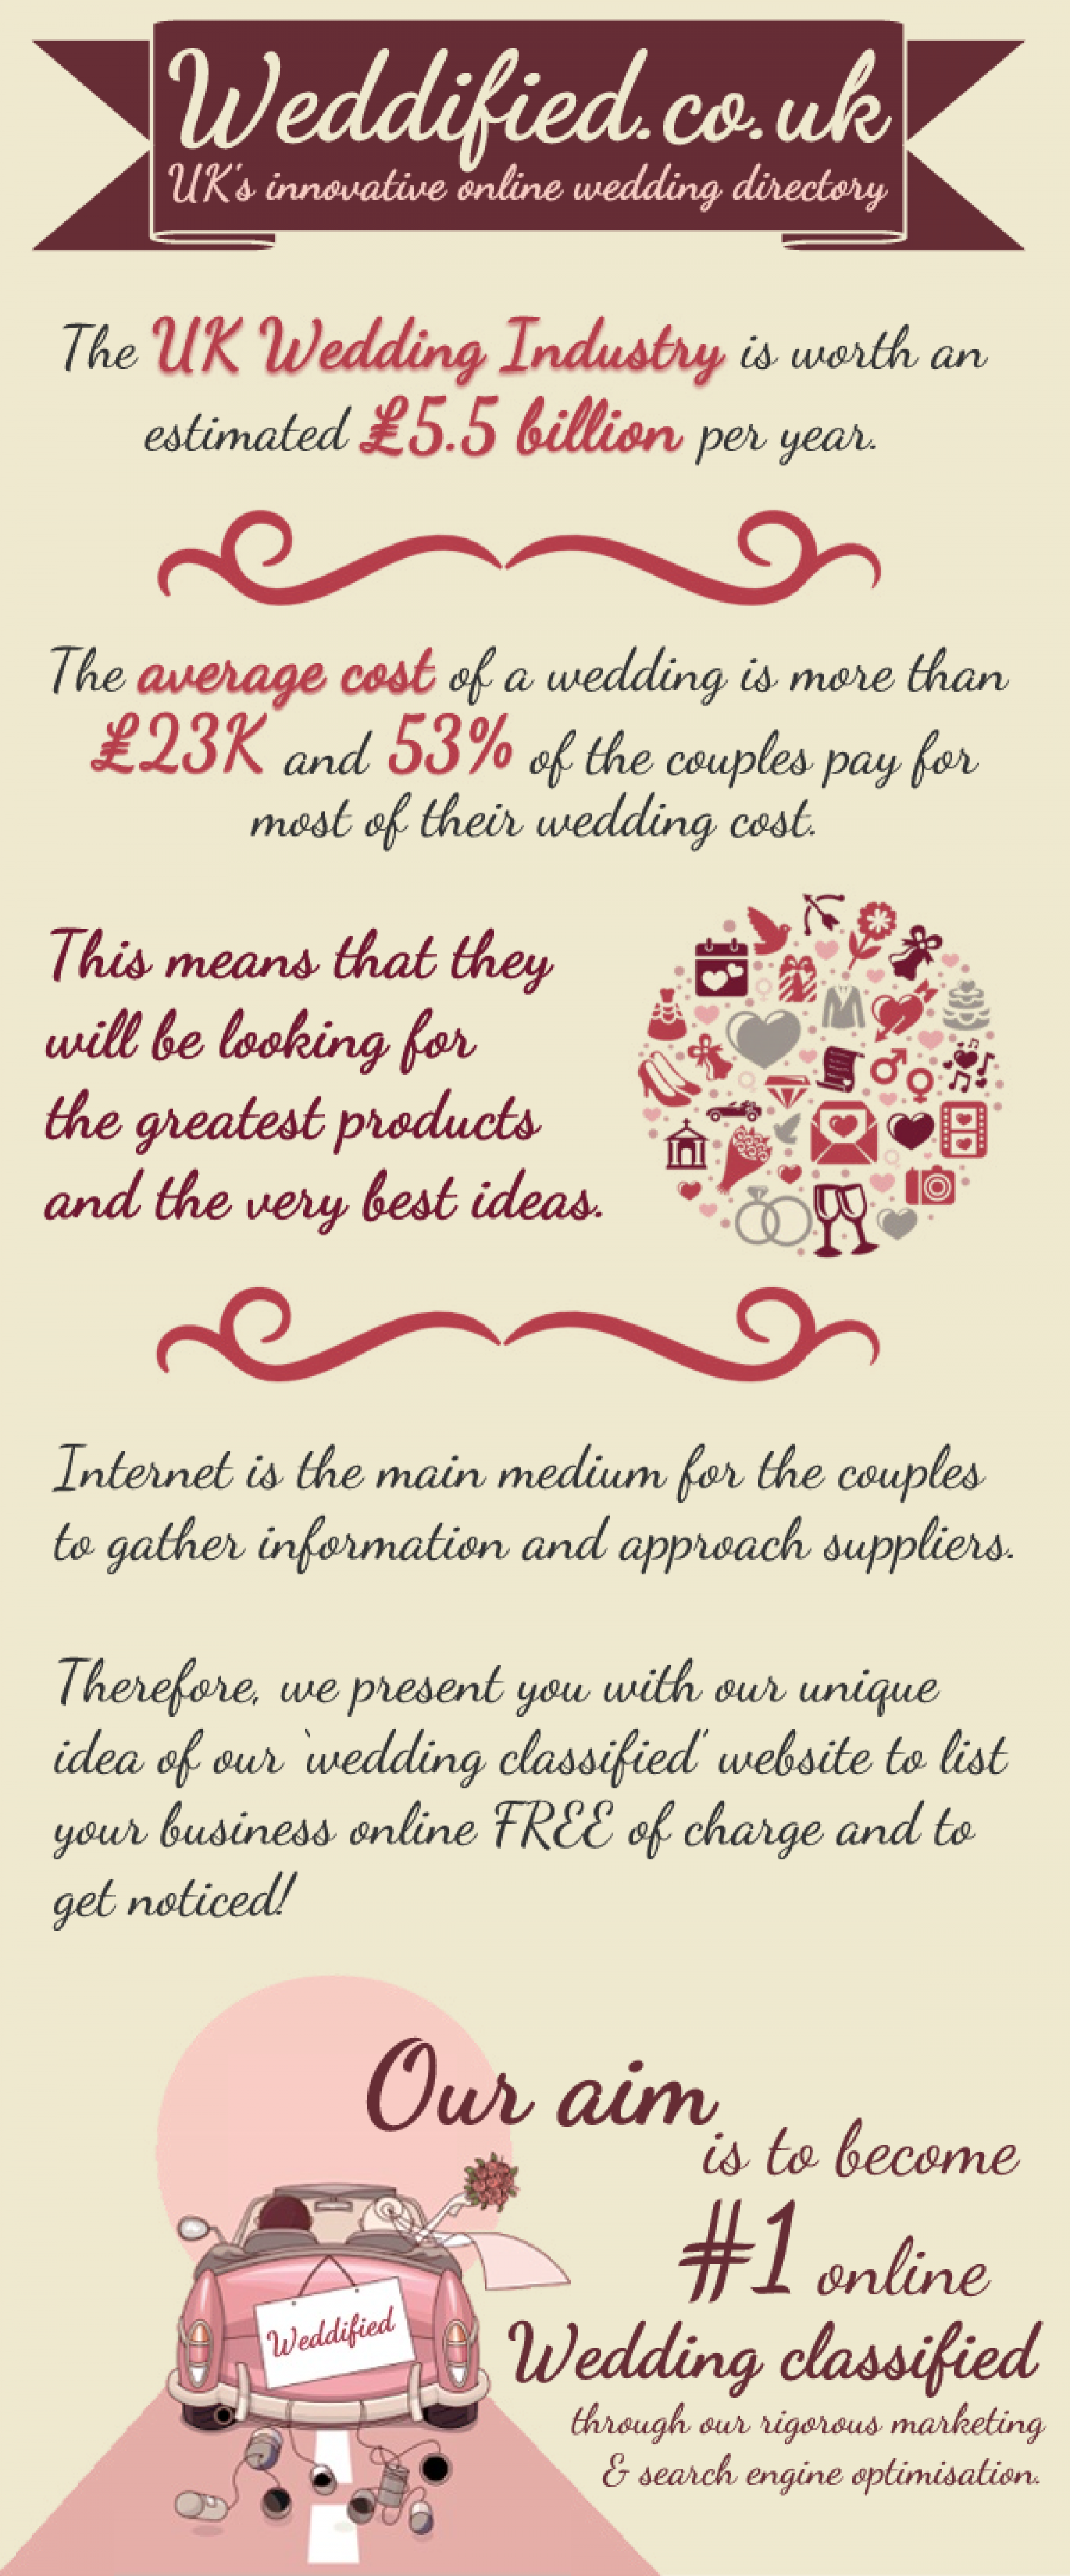 Weddified.co.uk - UK's innovative online wedding directory Infographic